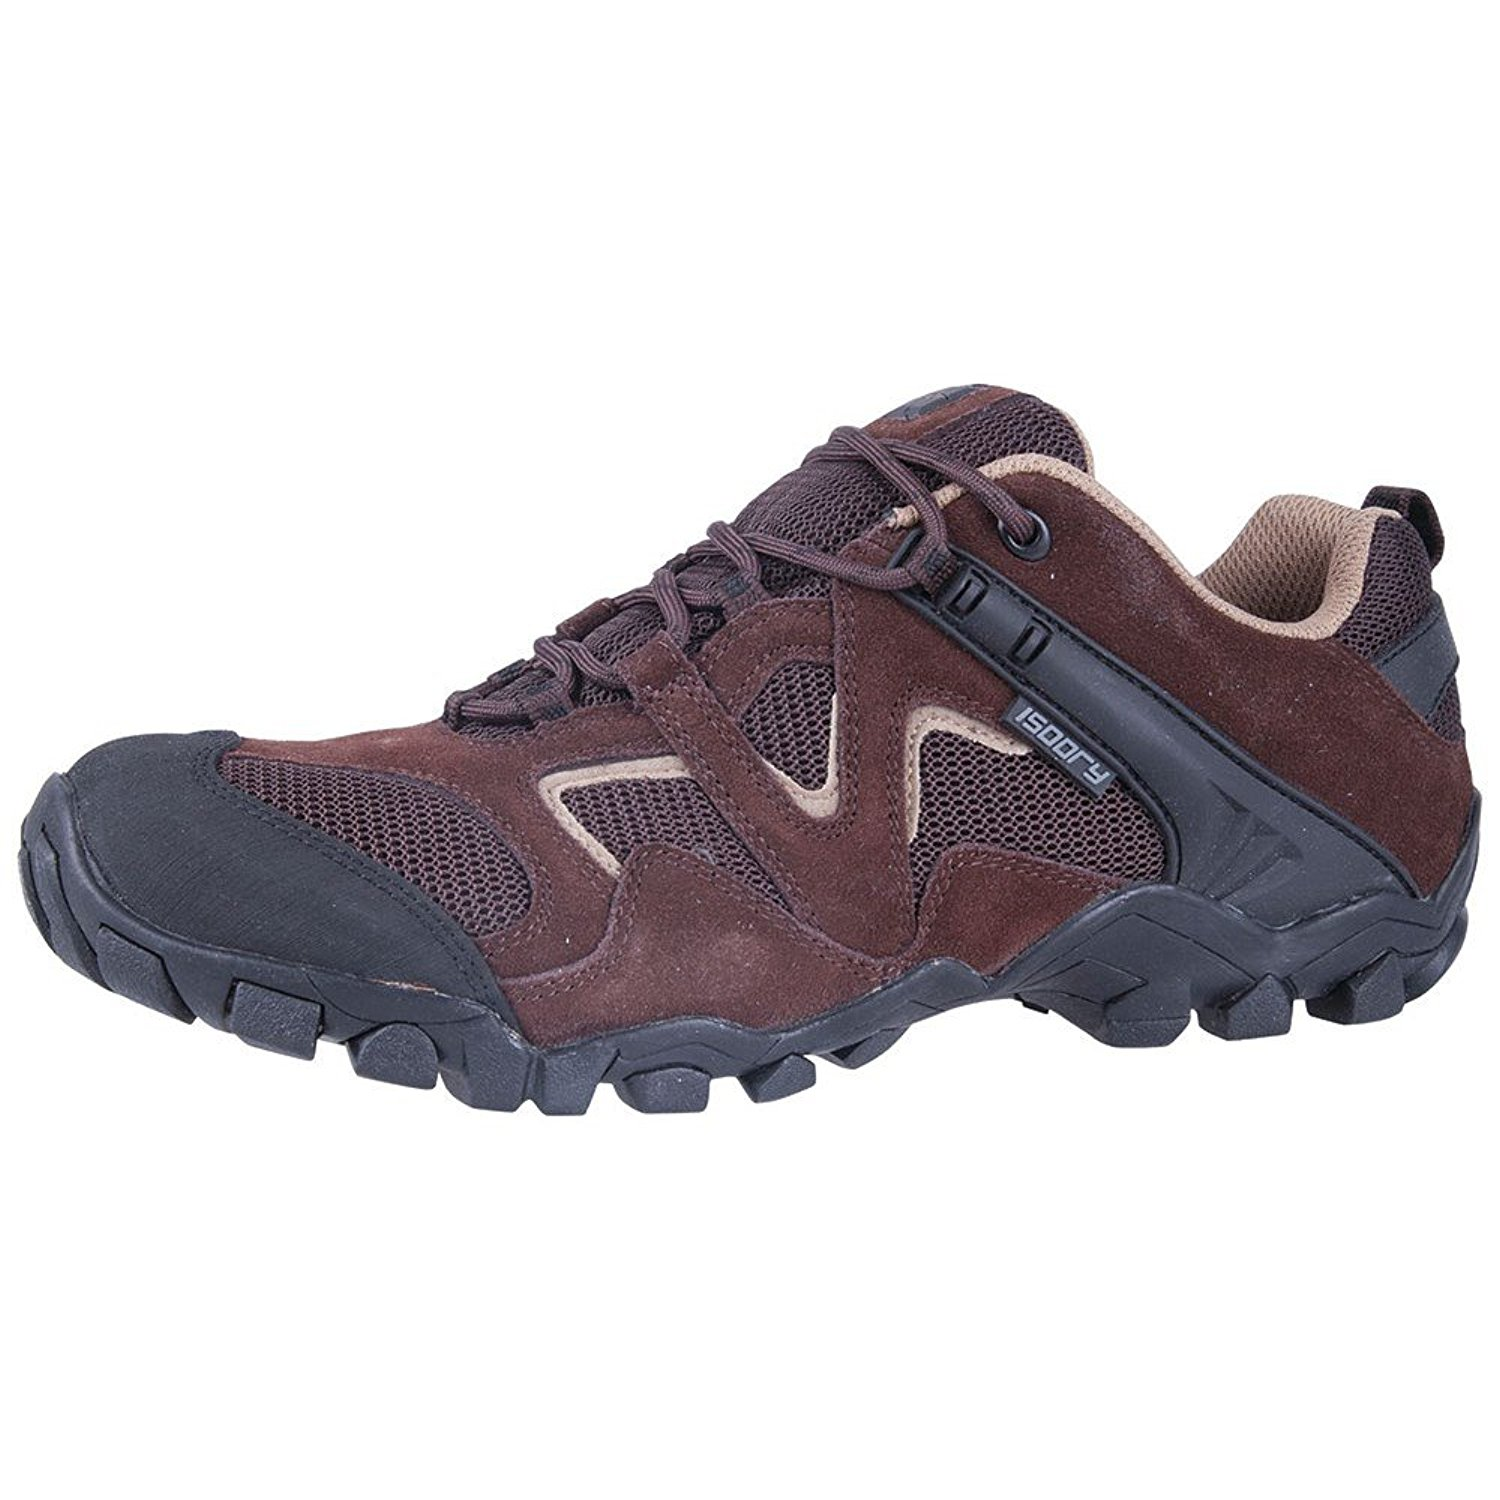 waterproof outdoors price womens for trainer men surprisingly walking comfy shoe very most a warehouse women are best like outdoor high pocket comforter perfect paths shoes from performing and path mountain the comfortable friendly